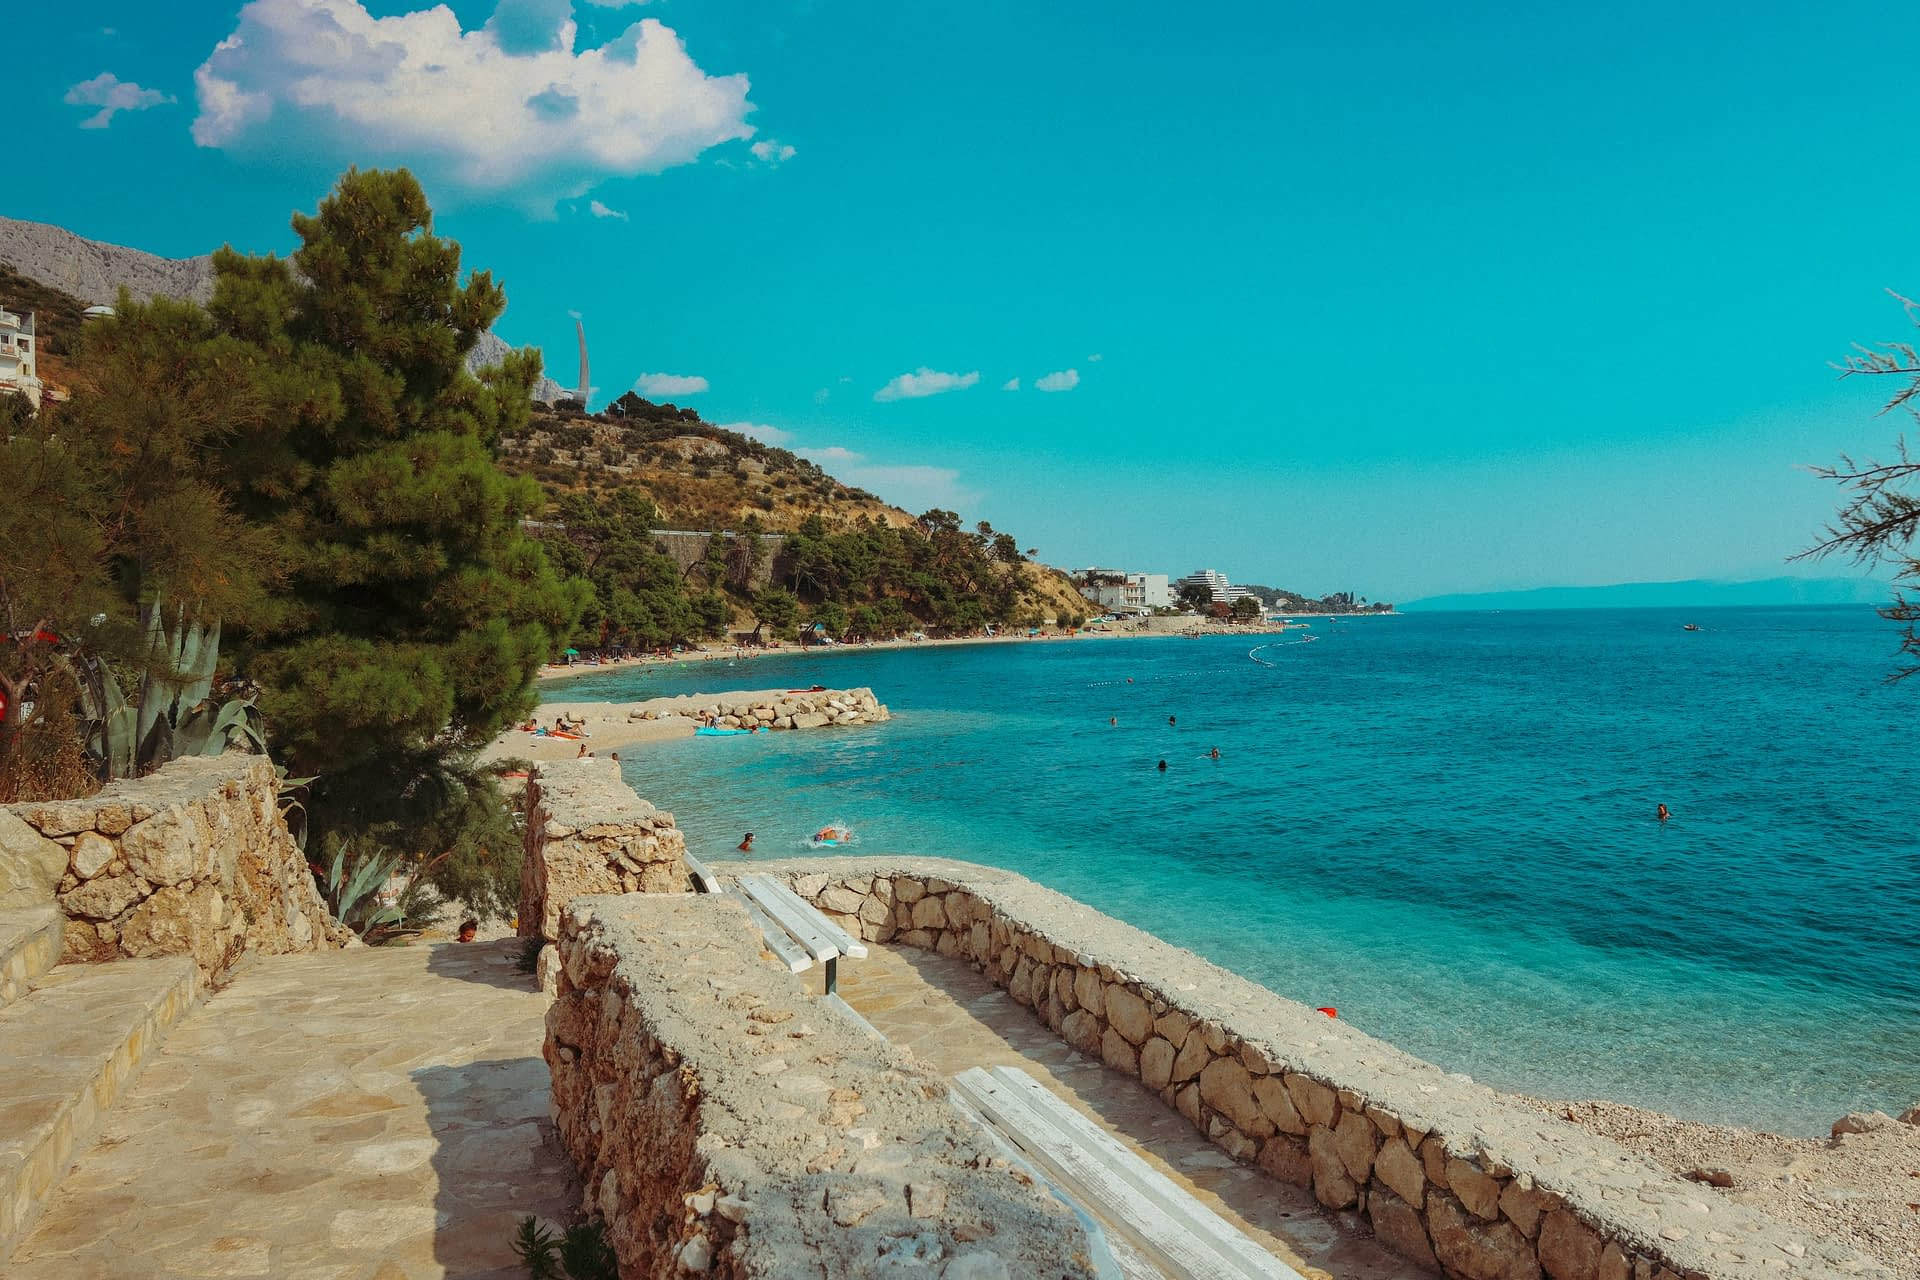 Podgora beach with azure waters. Your guide to the Croatian Riviera